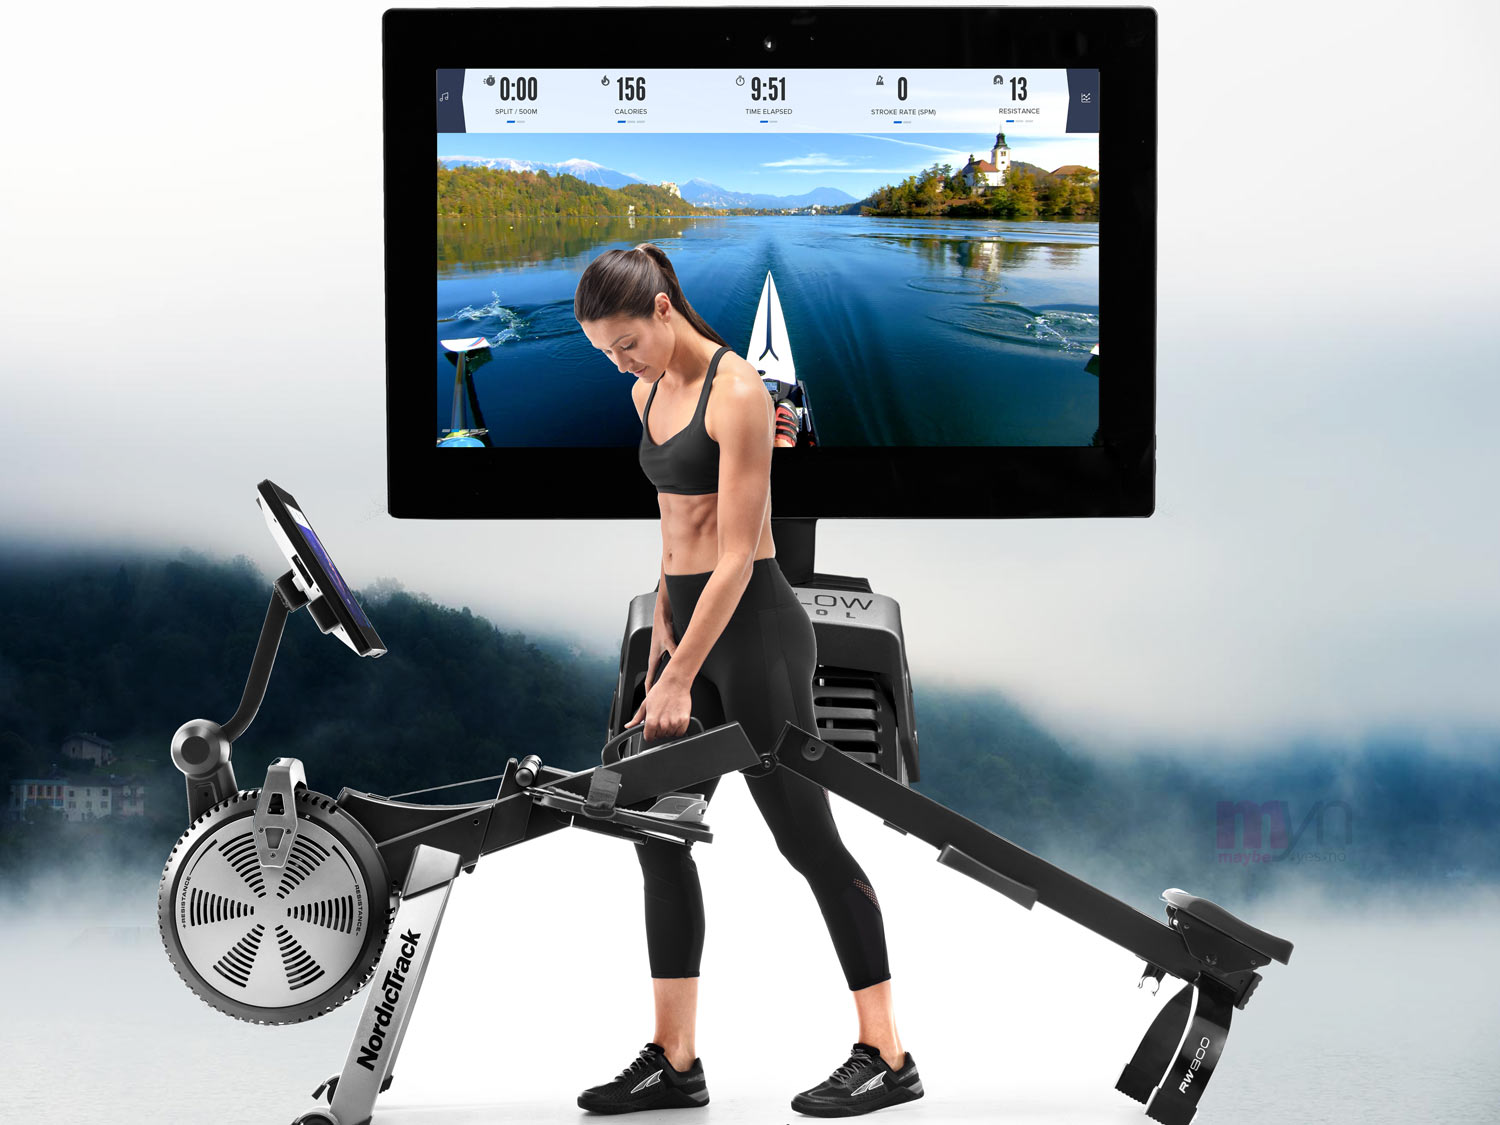 The ability to fold the  RW900 Rower  offers owners a nice space saving feature, while the 22 inch touchscreen console provides a picture crisp image for iFit destination rows